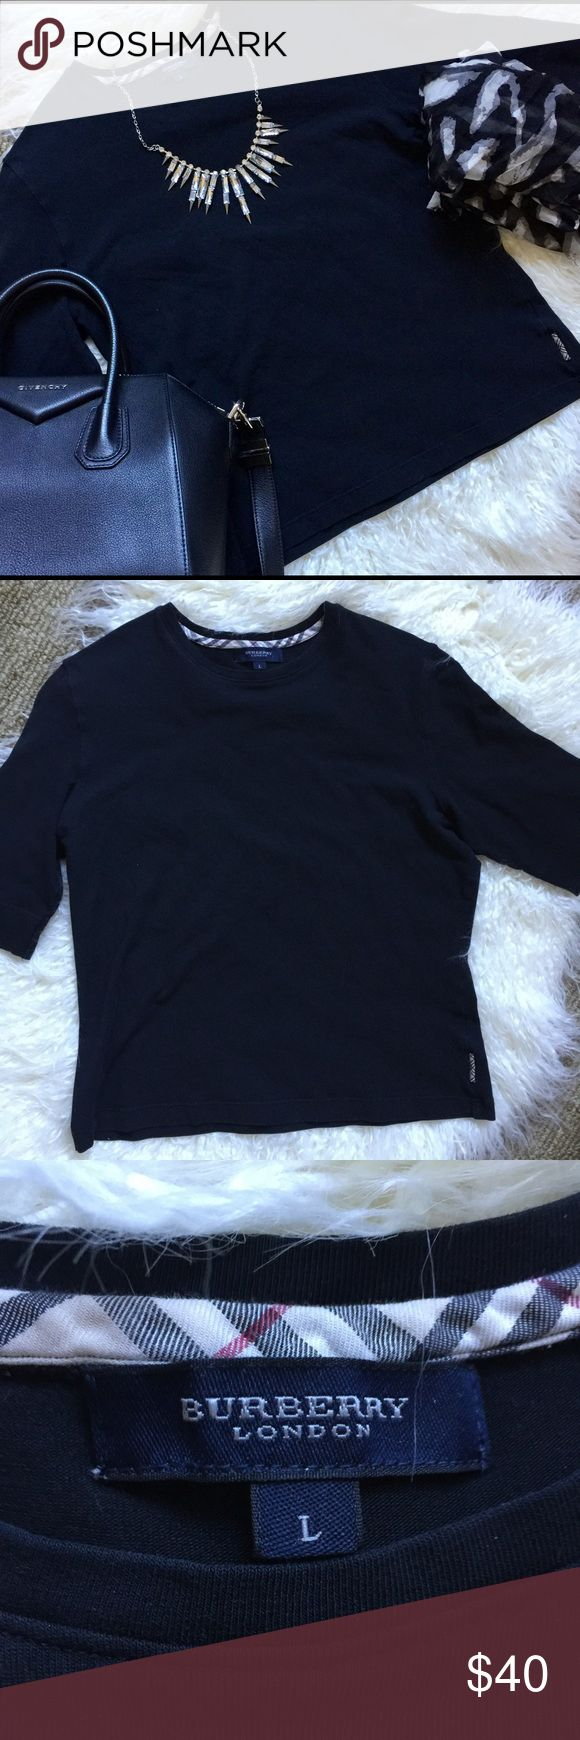 Burberry black knit top  Black Burberry London top.  Size large.  Super soft, Burberry pattern in the back of the beck and on left bottom side  - see photos. Great staple piece.   Material tag removed but it feels like a cotton with stretch material. Burberry Tops Tees - Short Sleeve